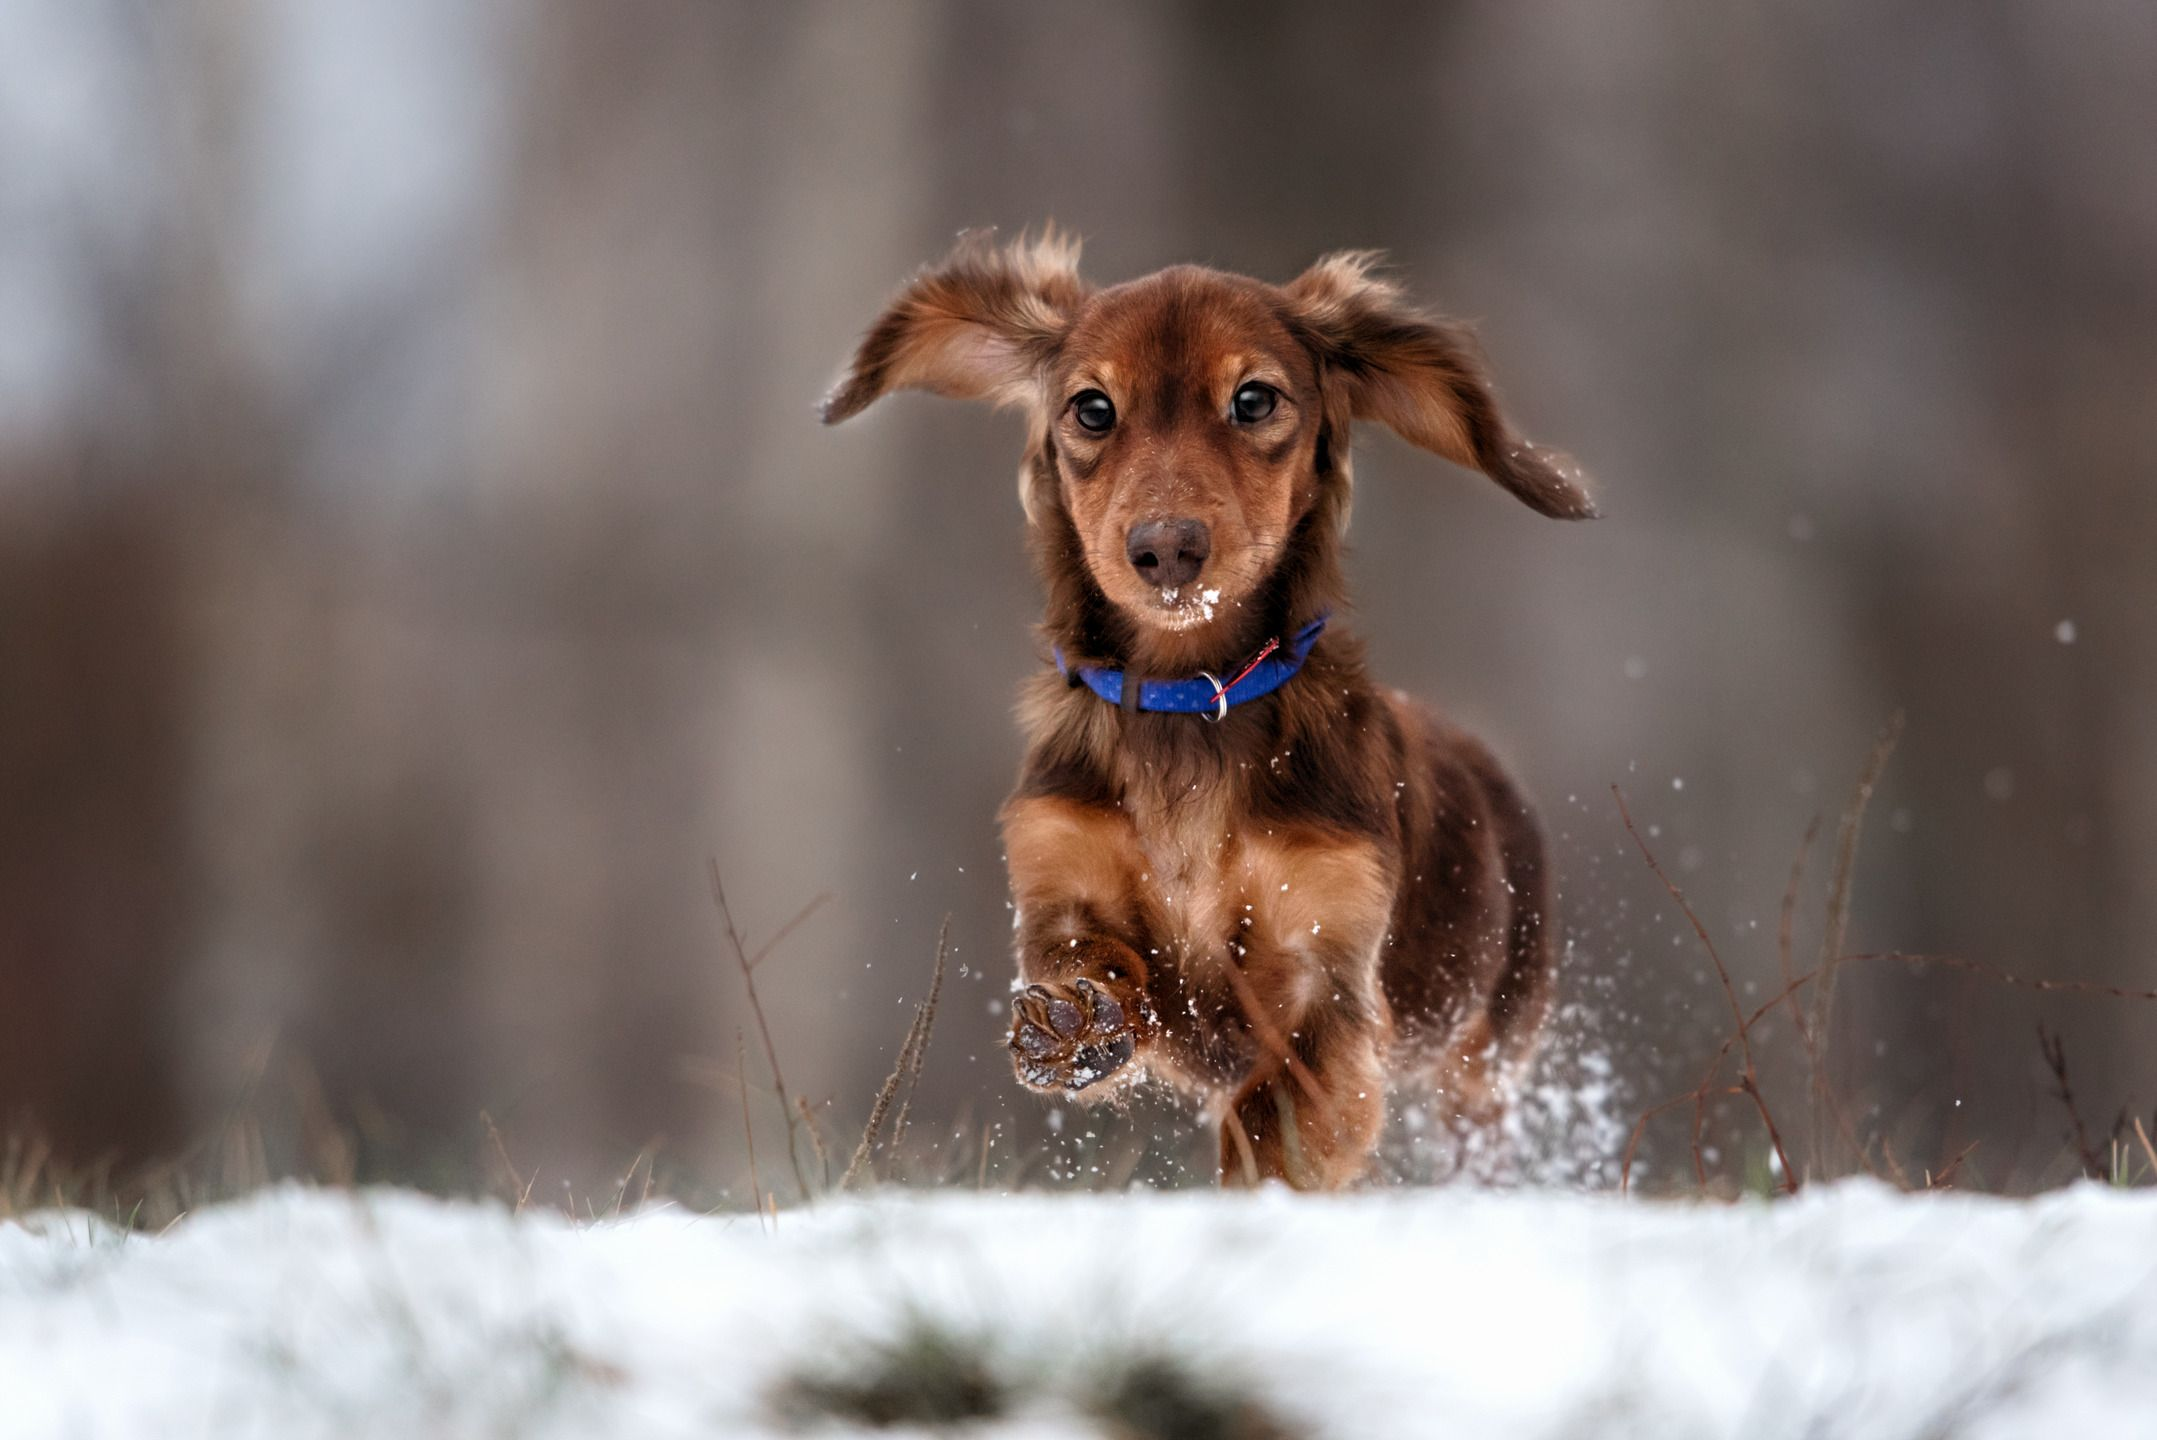 Happy Dachshund jumps up in winter park Dogs, Funny dogs